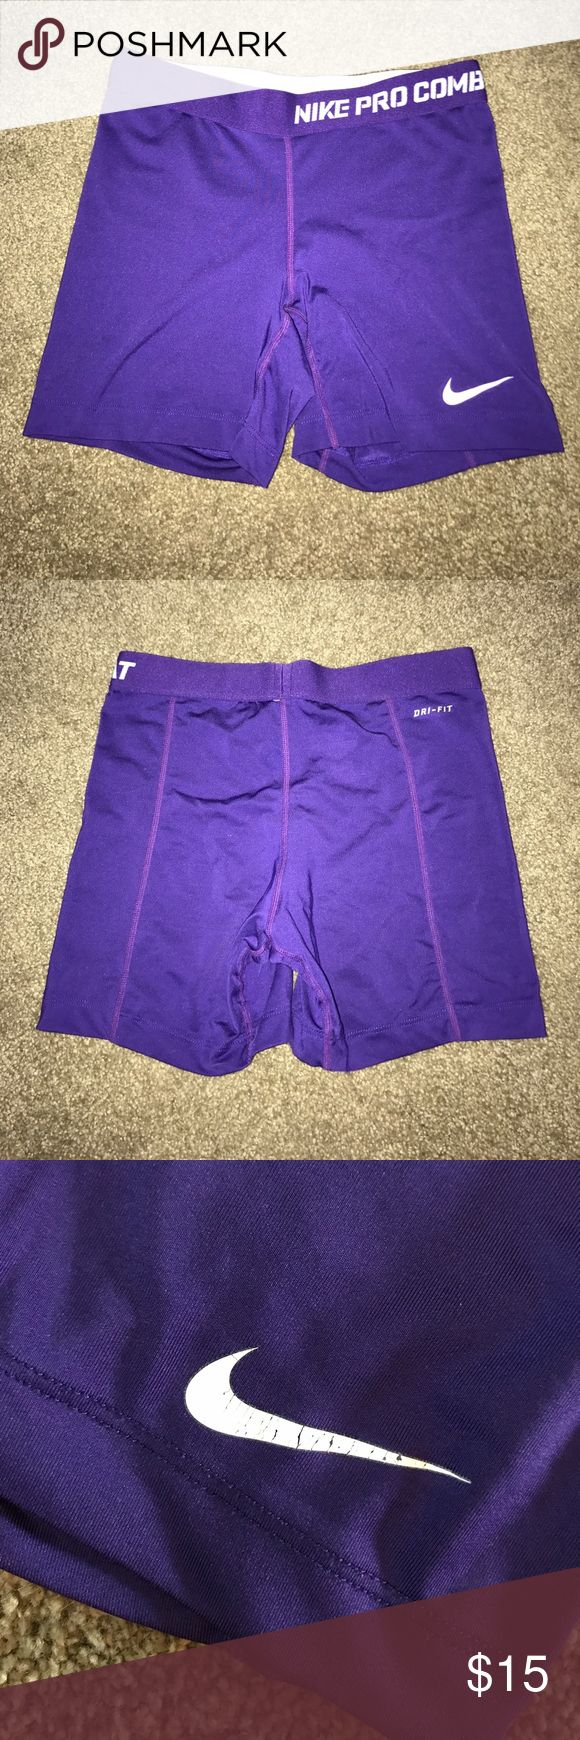 Nike pro combat spandex Good condition, gently used. Super comfy. Size S. great for volleyball or working out! Nike Shorts